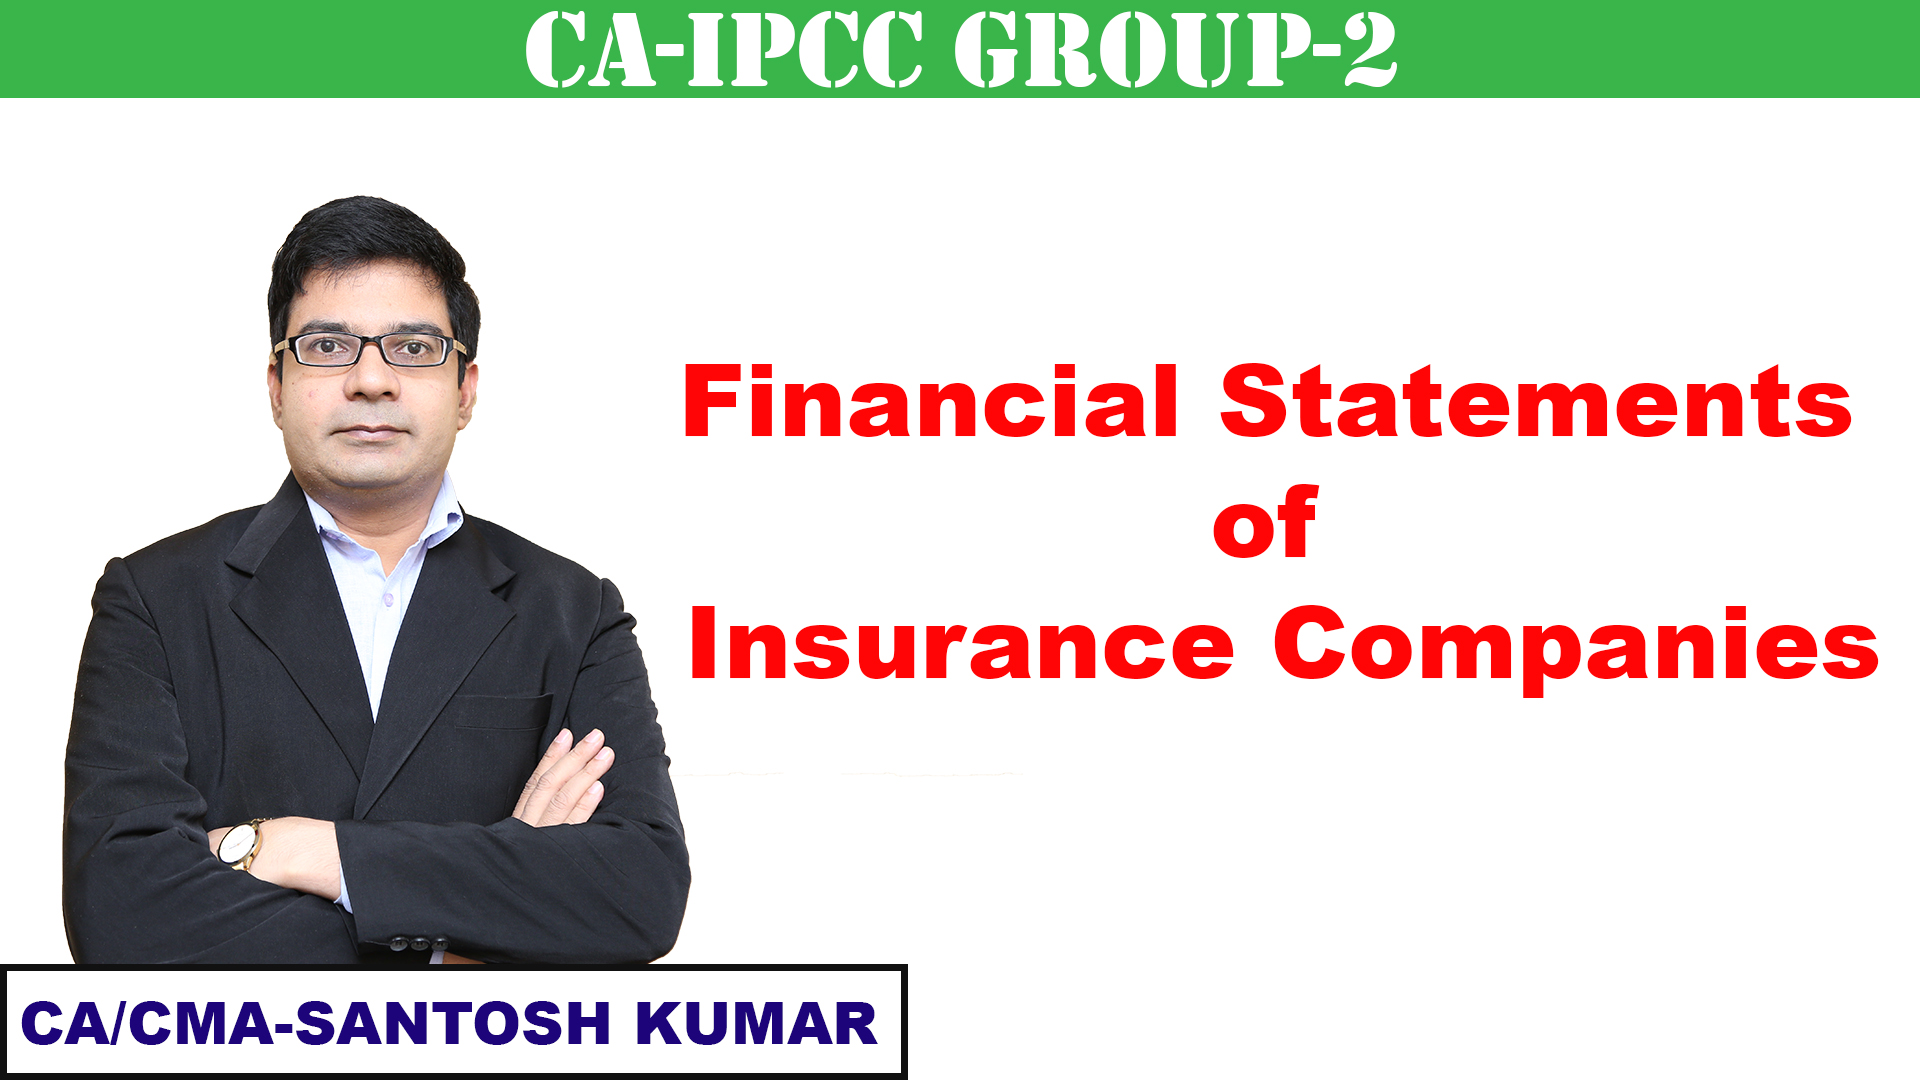 Financial Statements of Insurance Companies